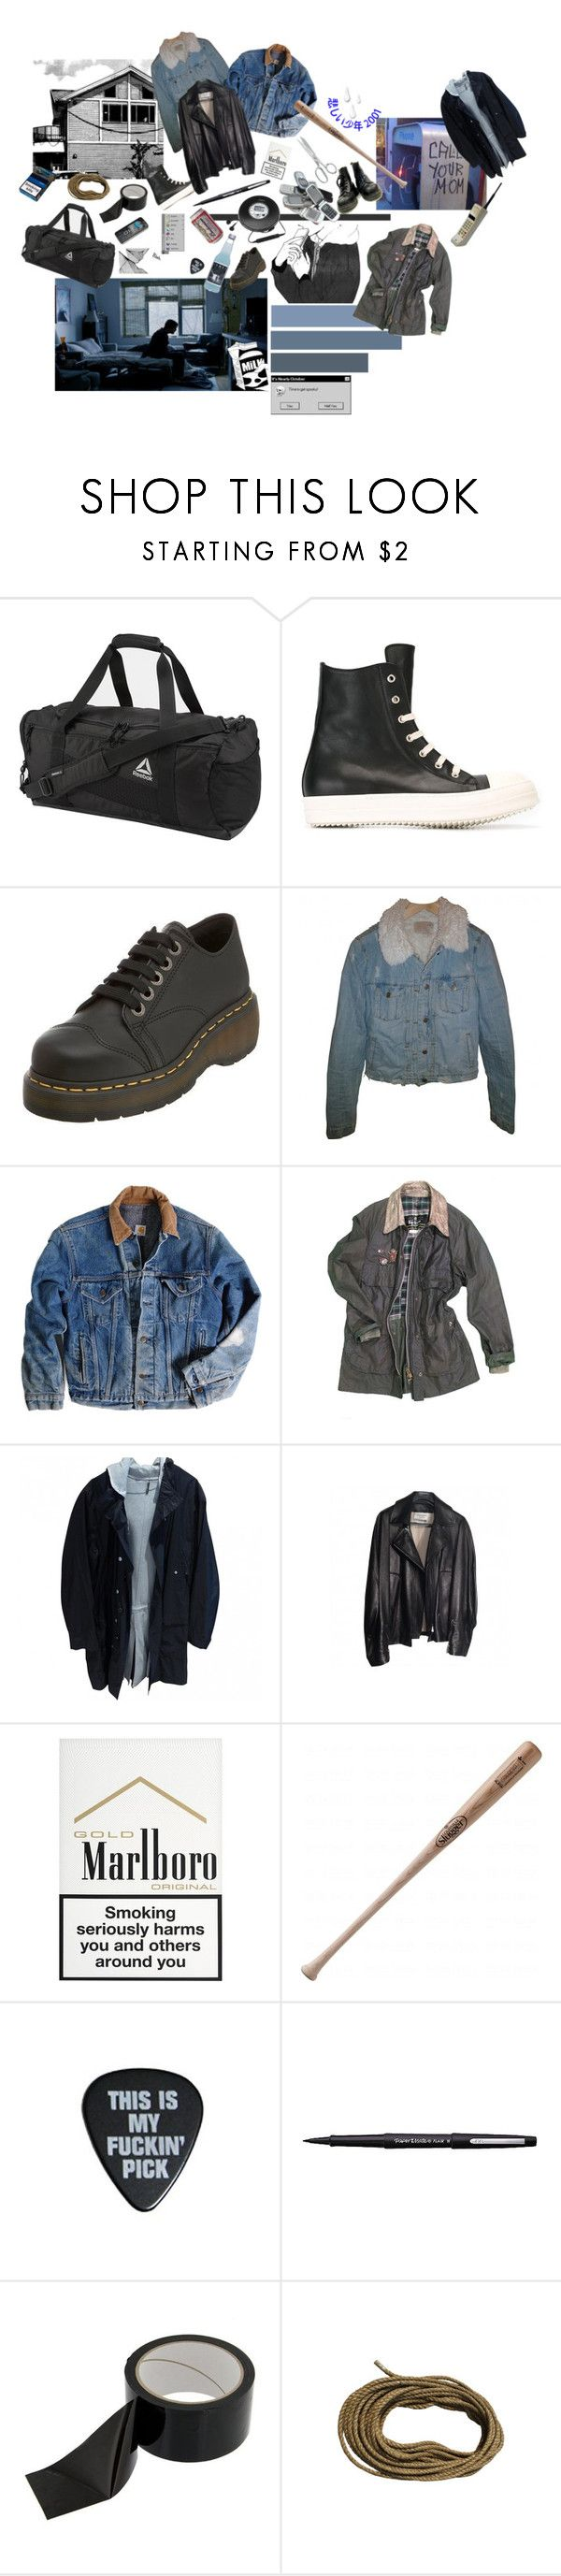 """𝐀𝐊𝐄𝐍𝐎"" by xxzodiacentertainmentxx ❤ liked on Polyvore featuring Reebok, Rick Owens, Dr. Martens, Carhartt, Vintage, Christian Dior, Yves Saint Laurent, Nokia, Sony and Louisville Slugger"